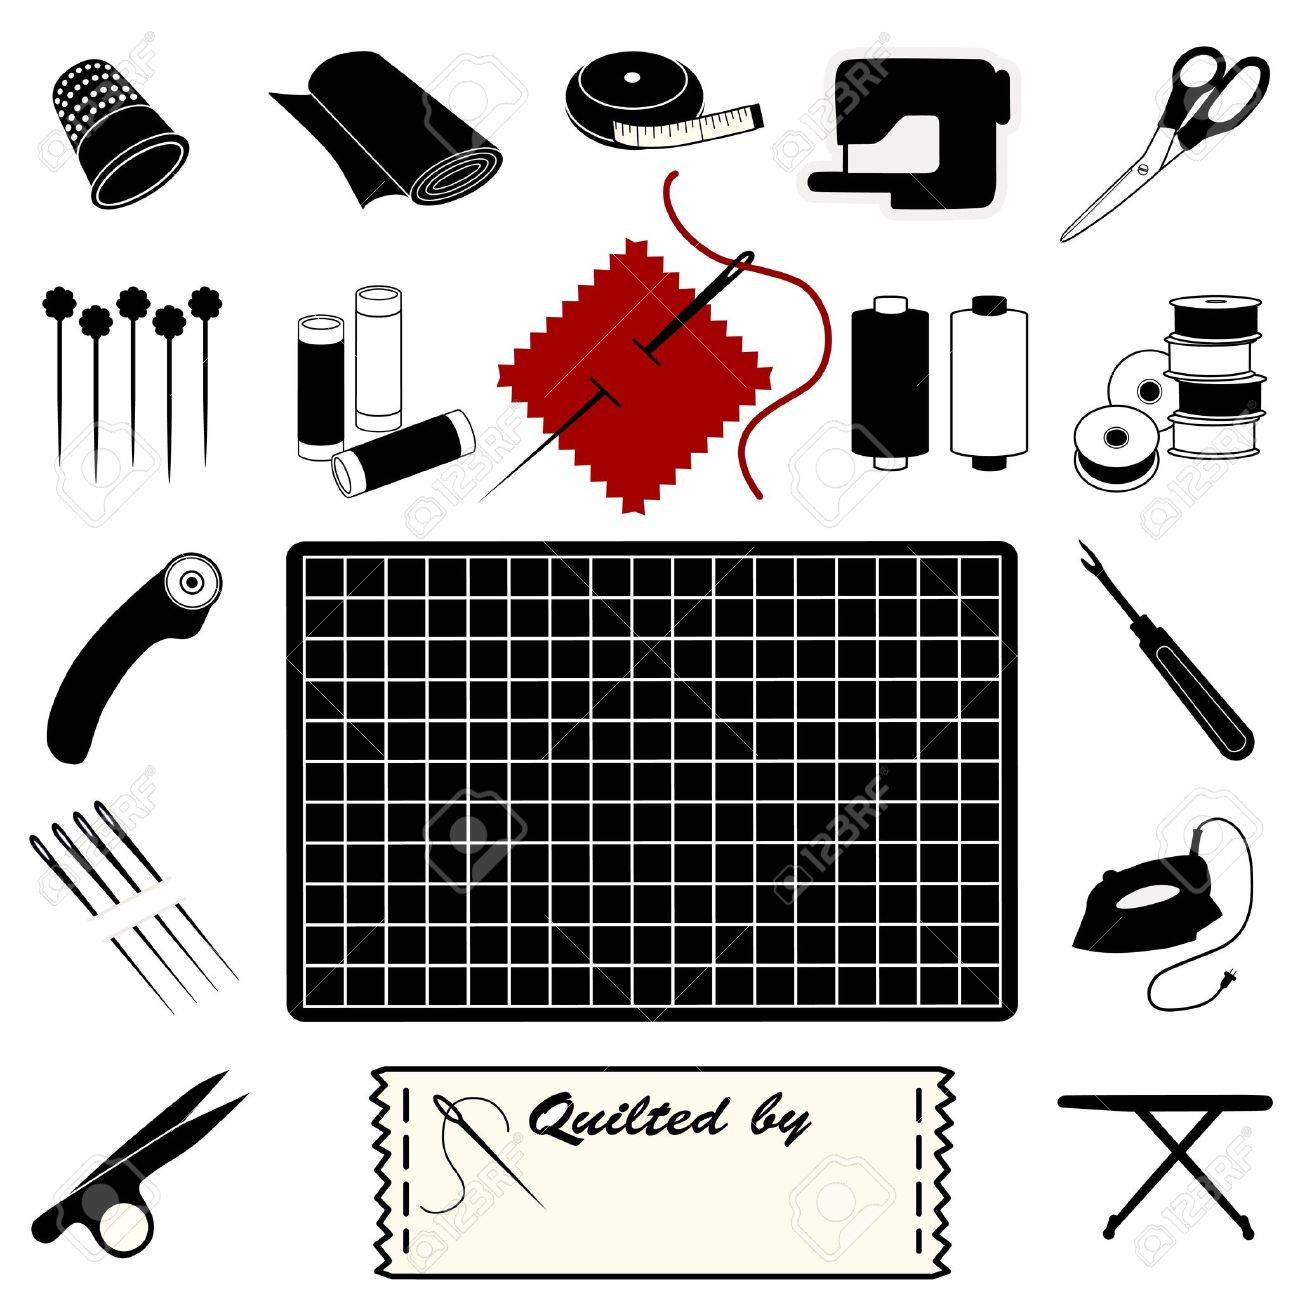 Quilting Icons for quilting, patchwork, applique, trapunto. Stock Vector - 11553626